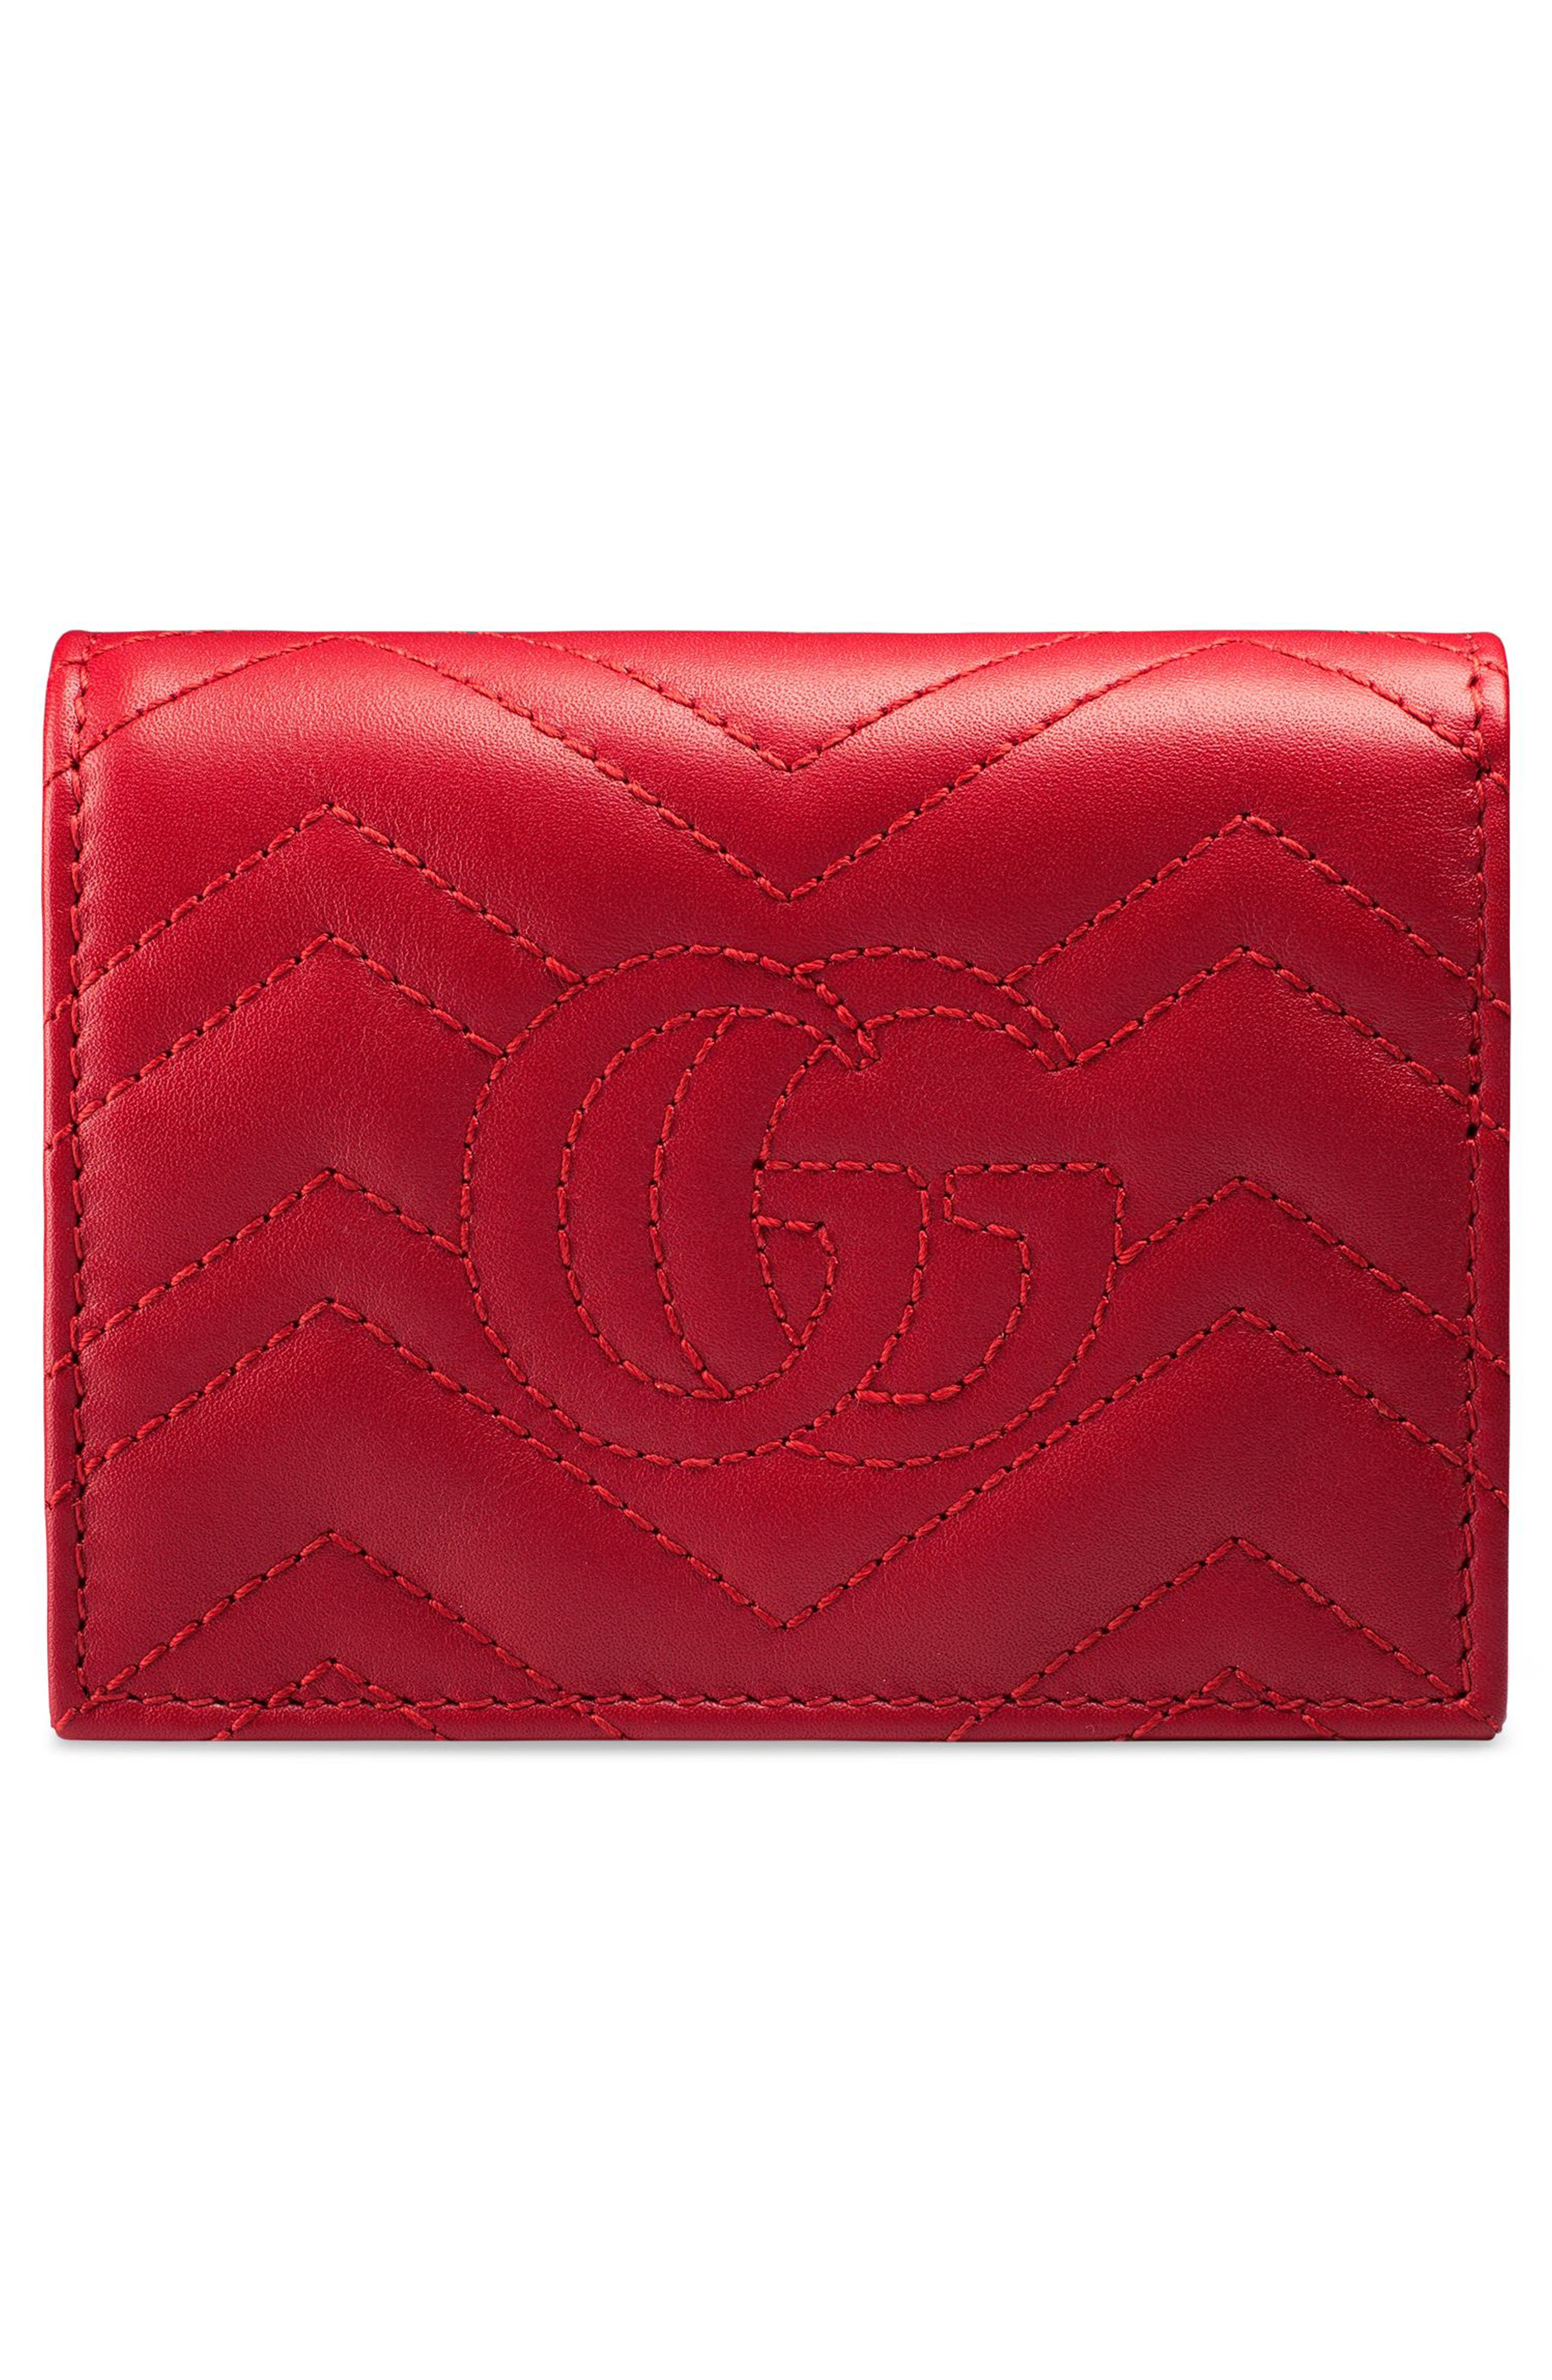 GG Marmont Matelassé Leather Card Case,                             Alternate thumbnail 4, color,                             Hibiscus Red